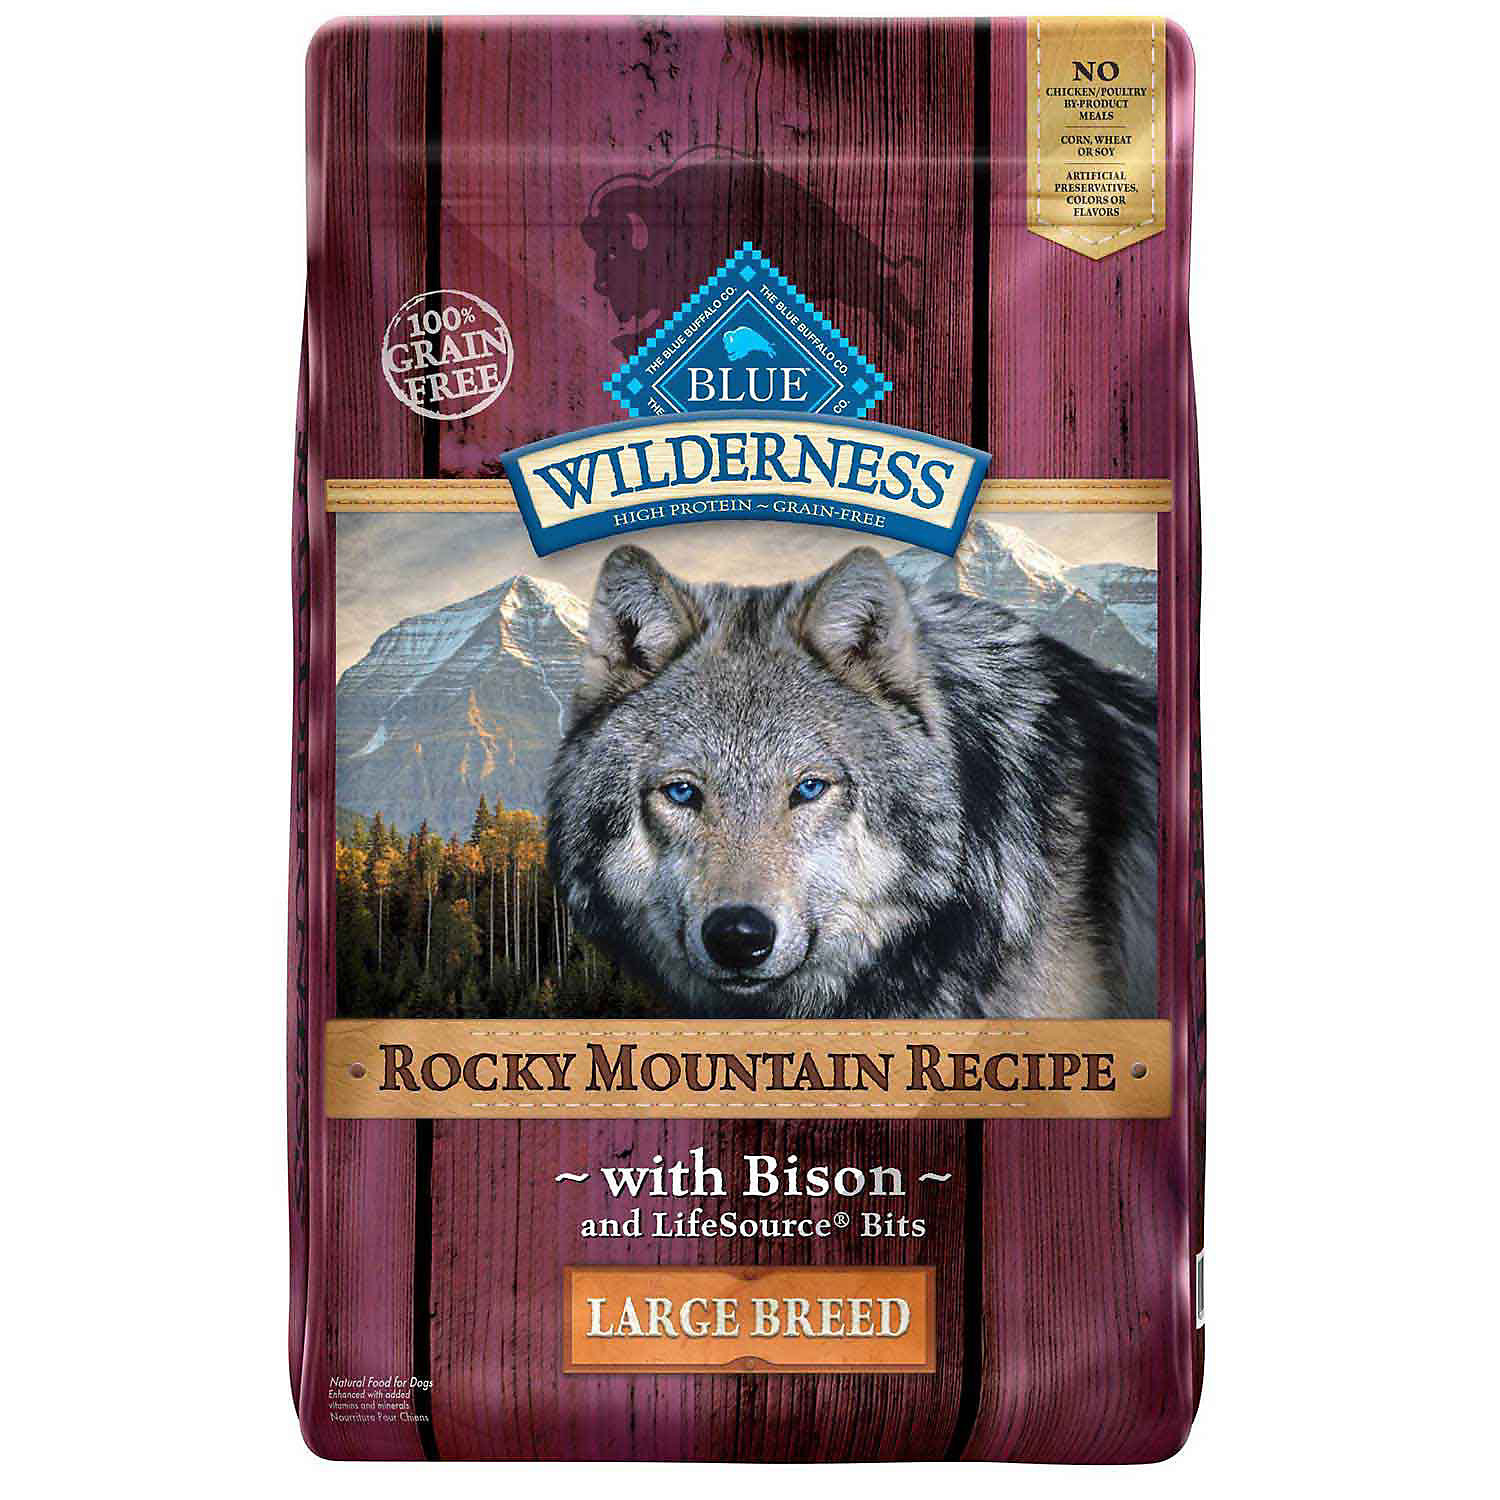 Blue Buffalo Wilderness Rocky Mountain Recipe with Bison Large Breed Adult Dog Food 22 lbs.